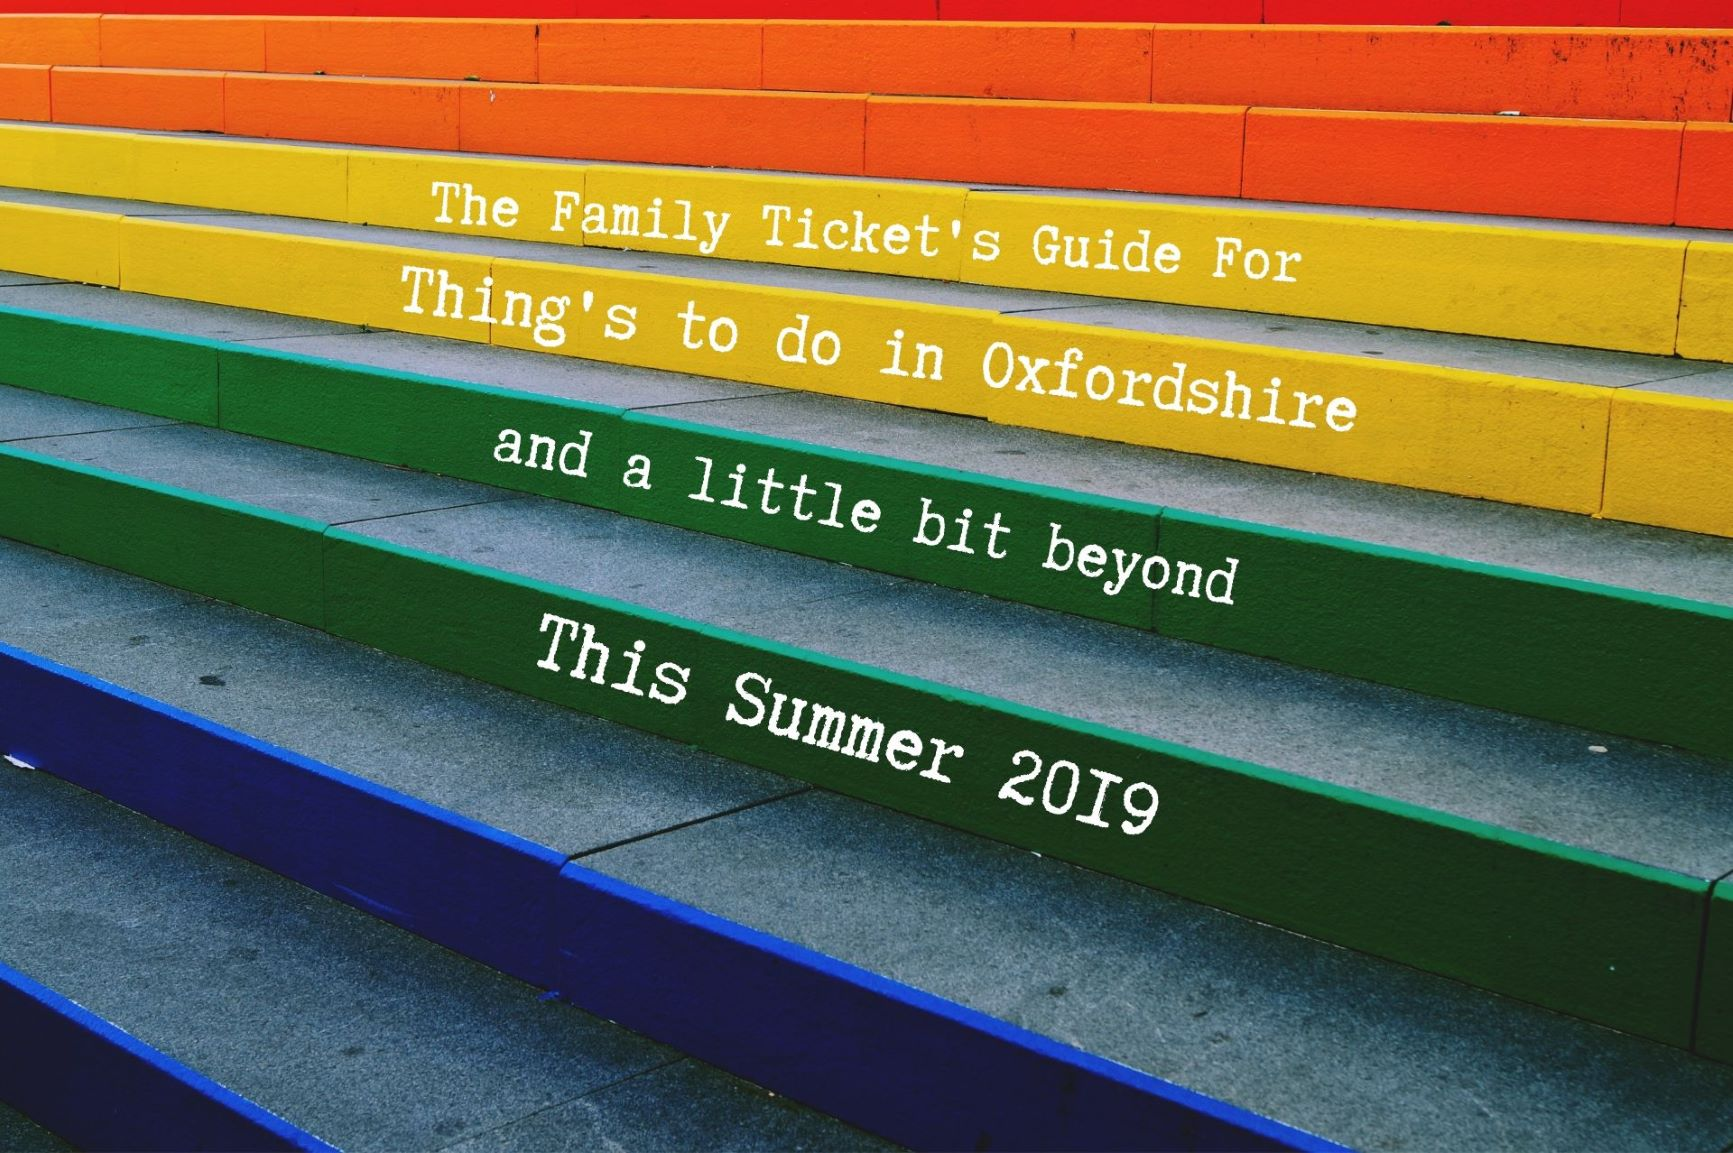 Summer Whats On Guide 2019